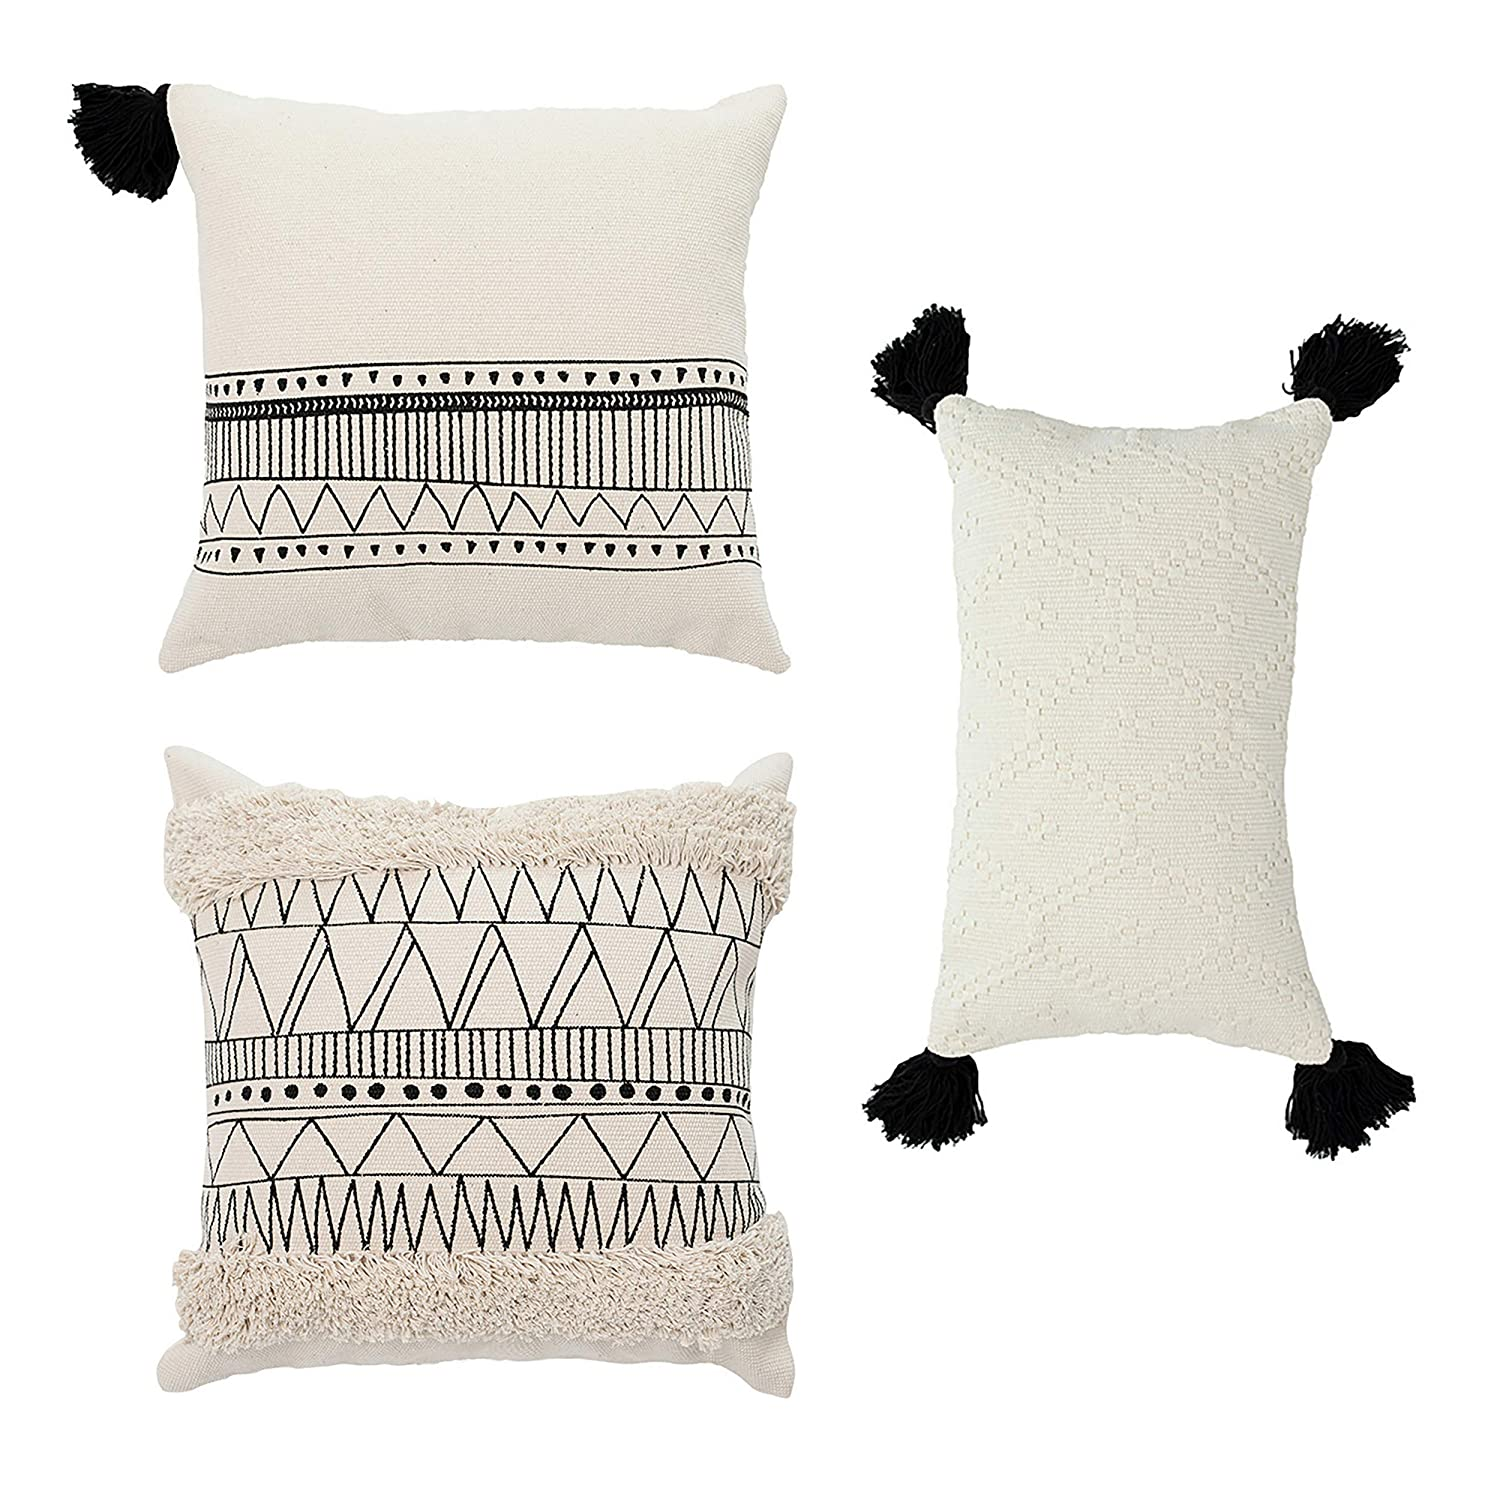 """Cozi Abode Geometric Decorative Throw Pillow Covers Set of 3 18 X 18"""" 12 X 20"""" for Bed/Sofa Woven Tassels Tufted Modern Design Black and Cream"""